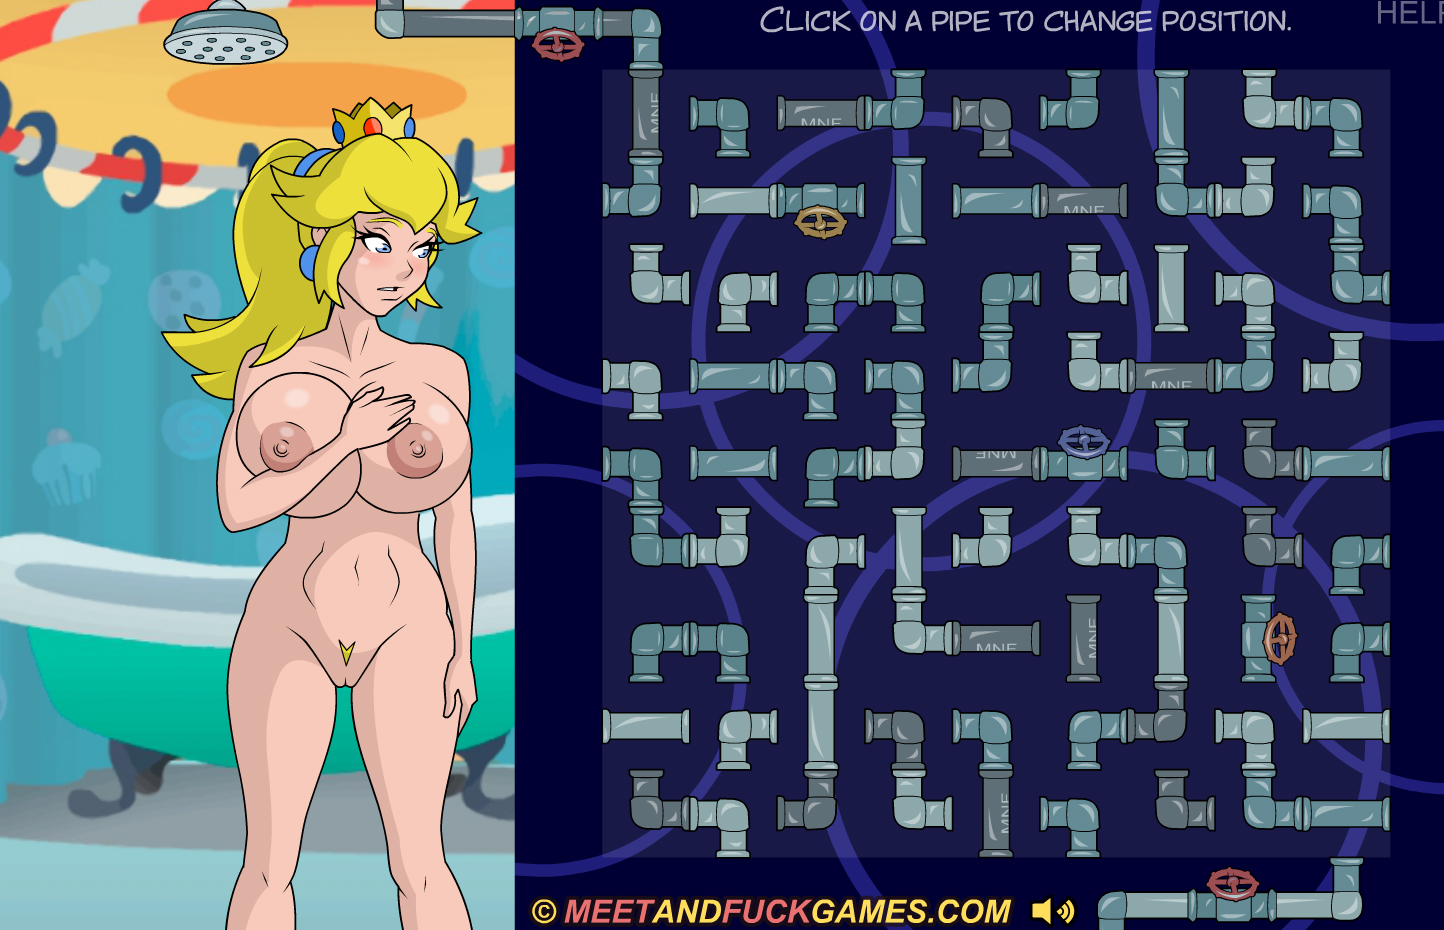 super-mario-sex-game-meet-and-fuck-games-parody